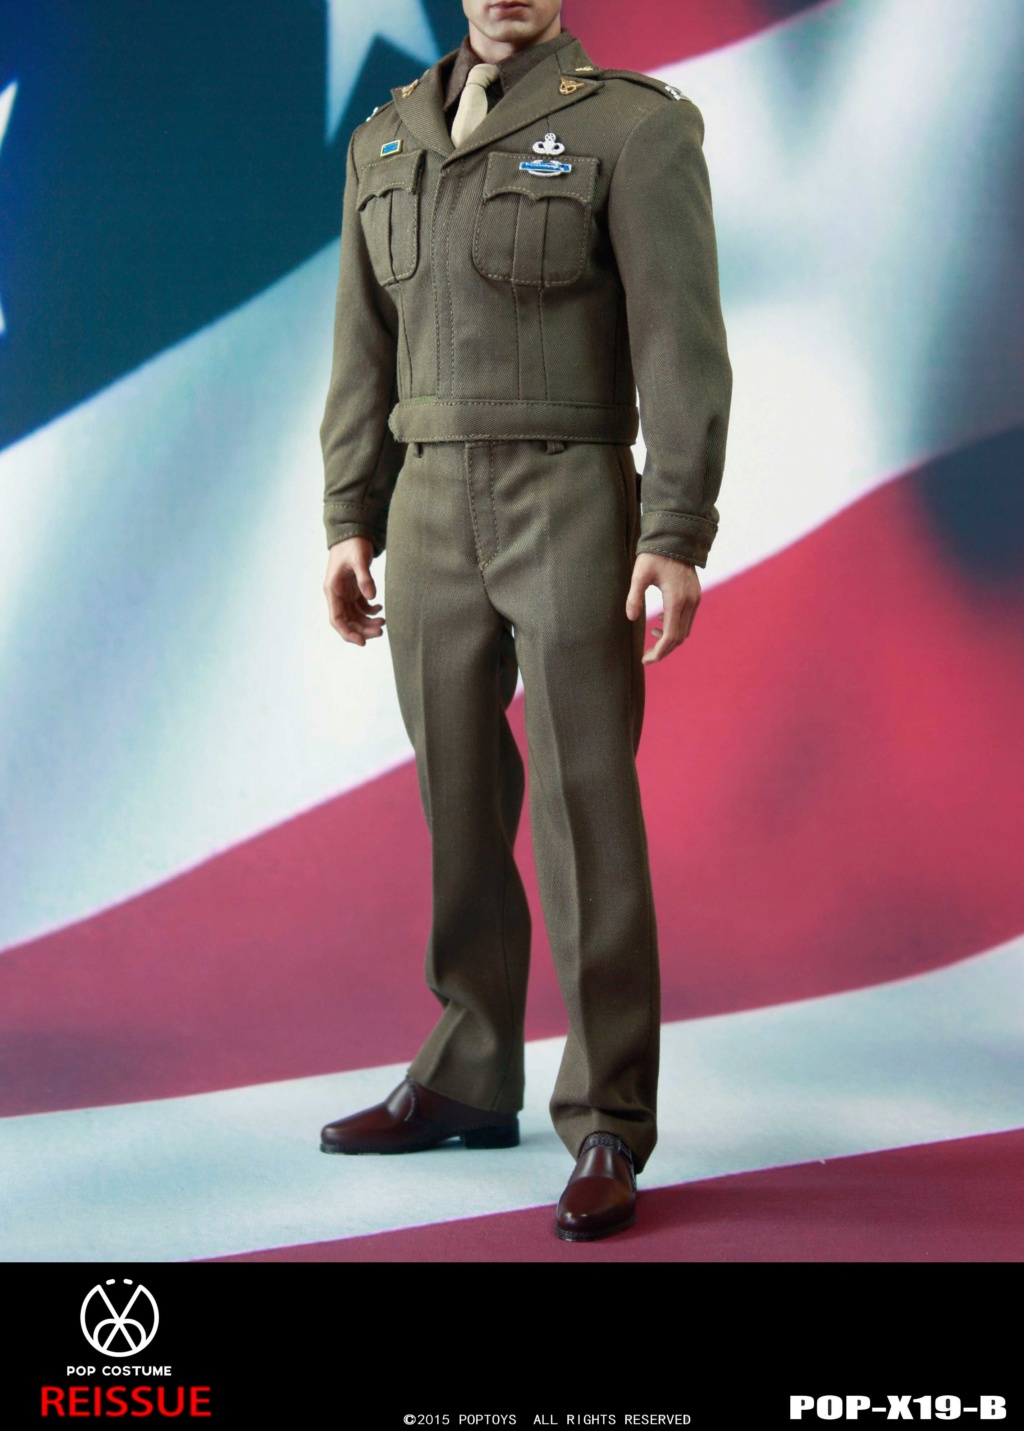 male - NEW PRODUCT: POPTOYS: 1/6 Series X19 - World War II Golden Age US Army Uniform Uniform Set - B (Reprinted in 2019) 21301911